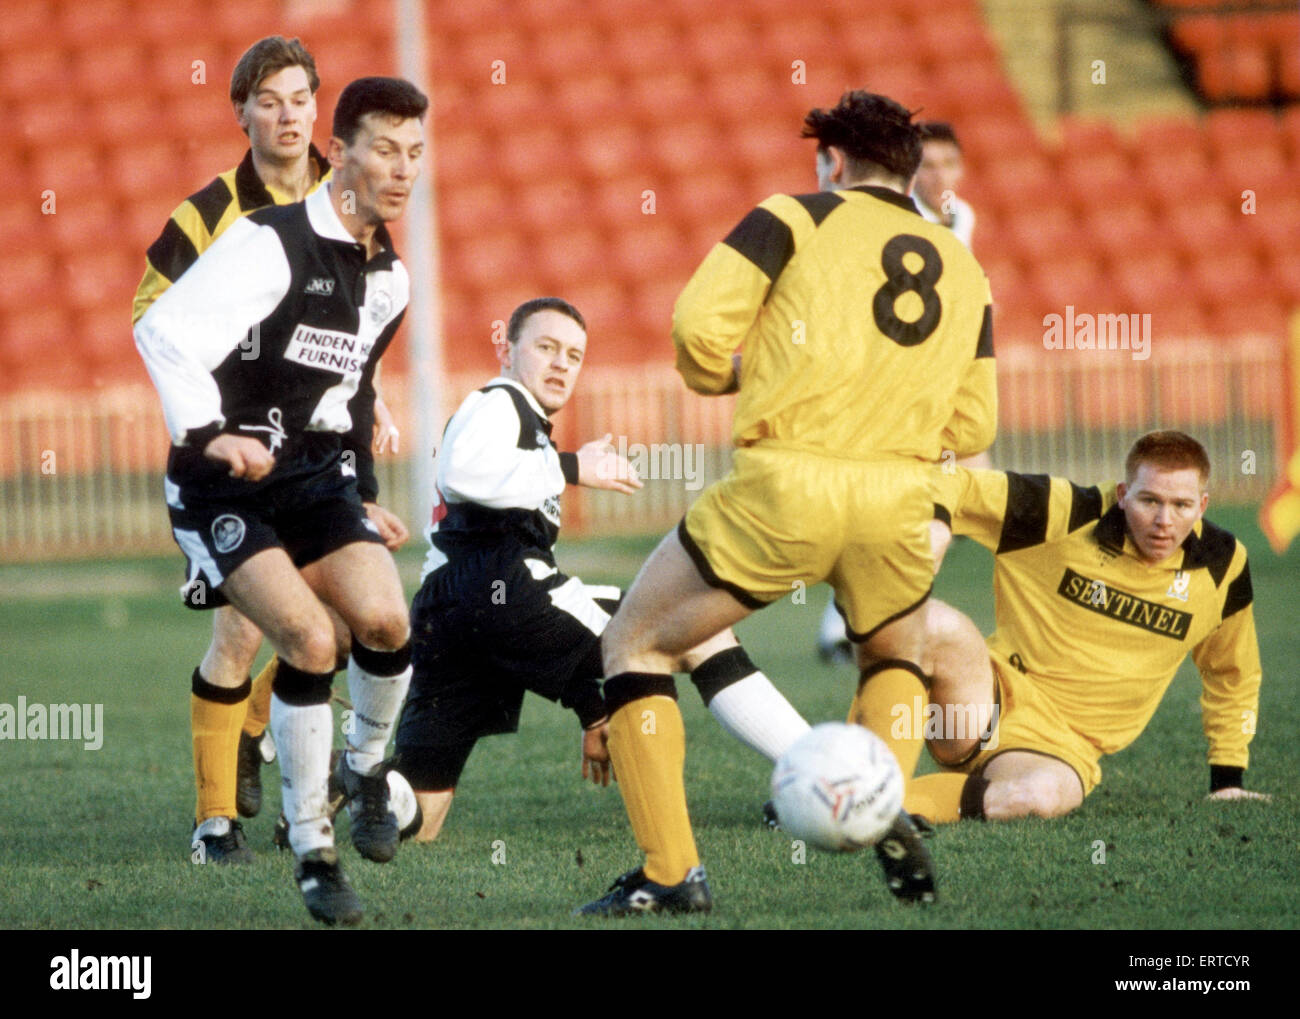 Mark Hine (left) and Alan Lamb (right), Gateshead FC footballers,  playing Stafford Rangers, 4th December 1993. - Stock Image